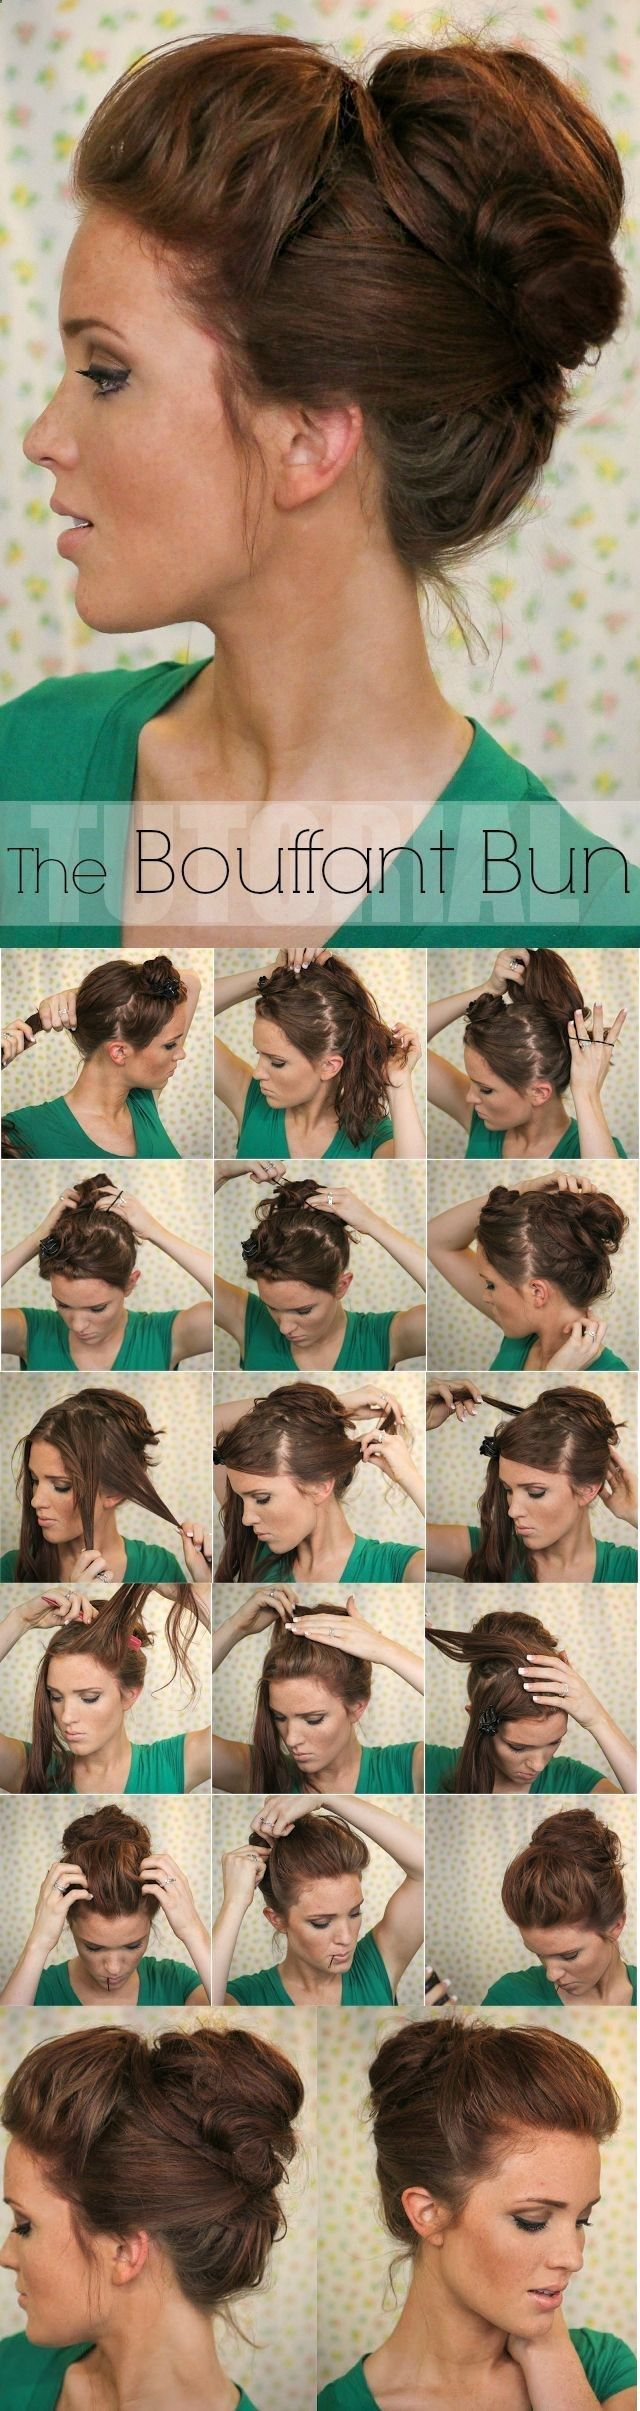 cut up-do for everyday